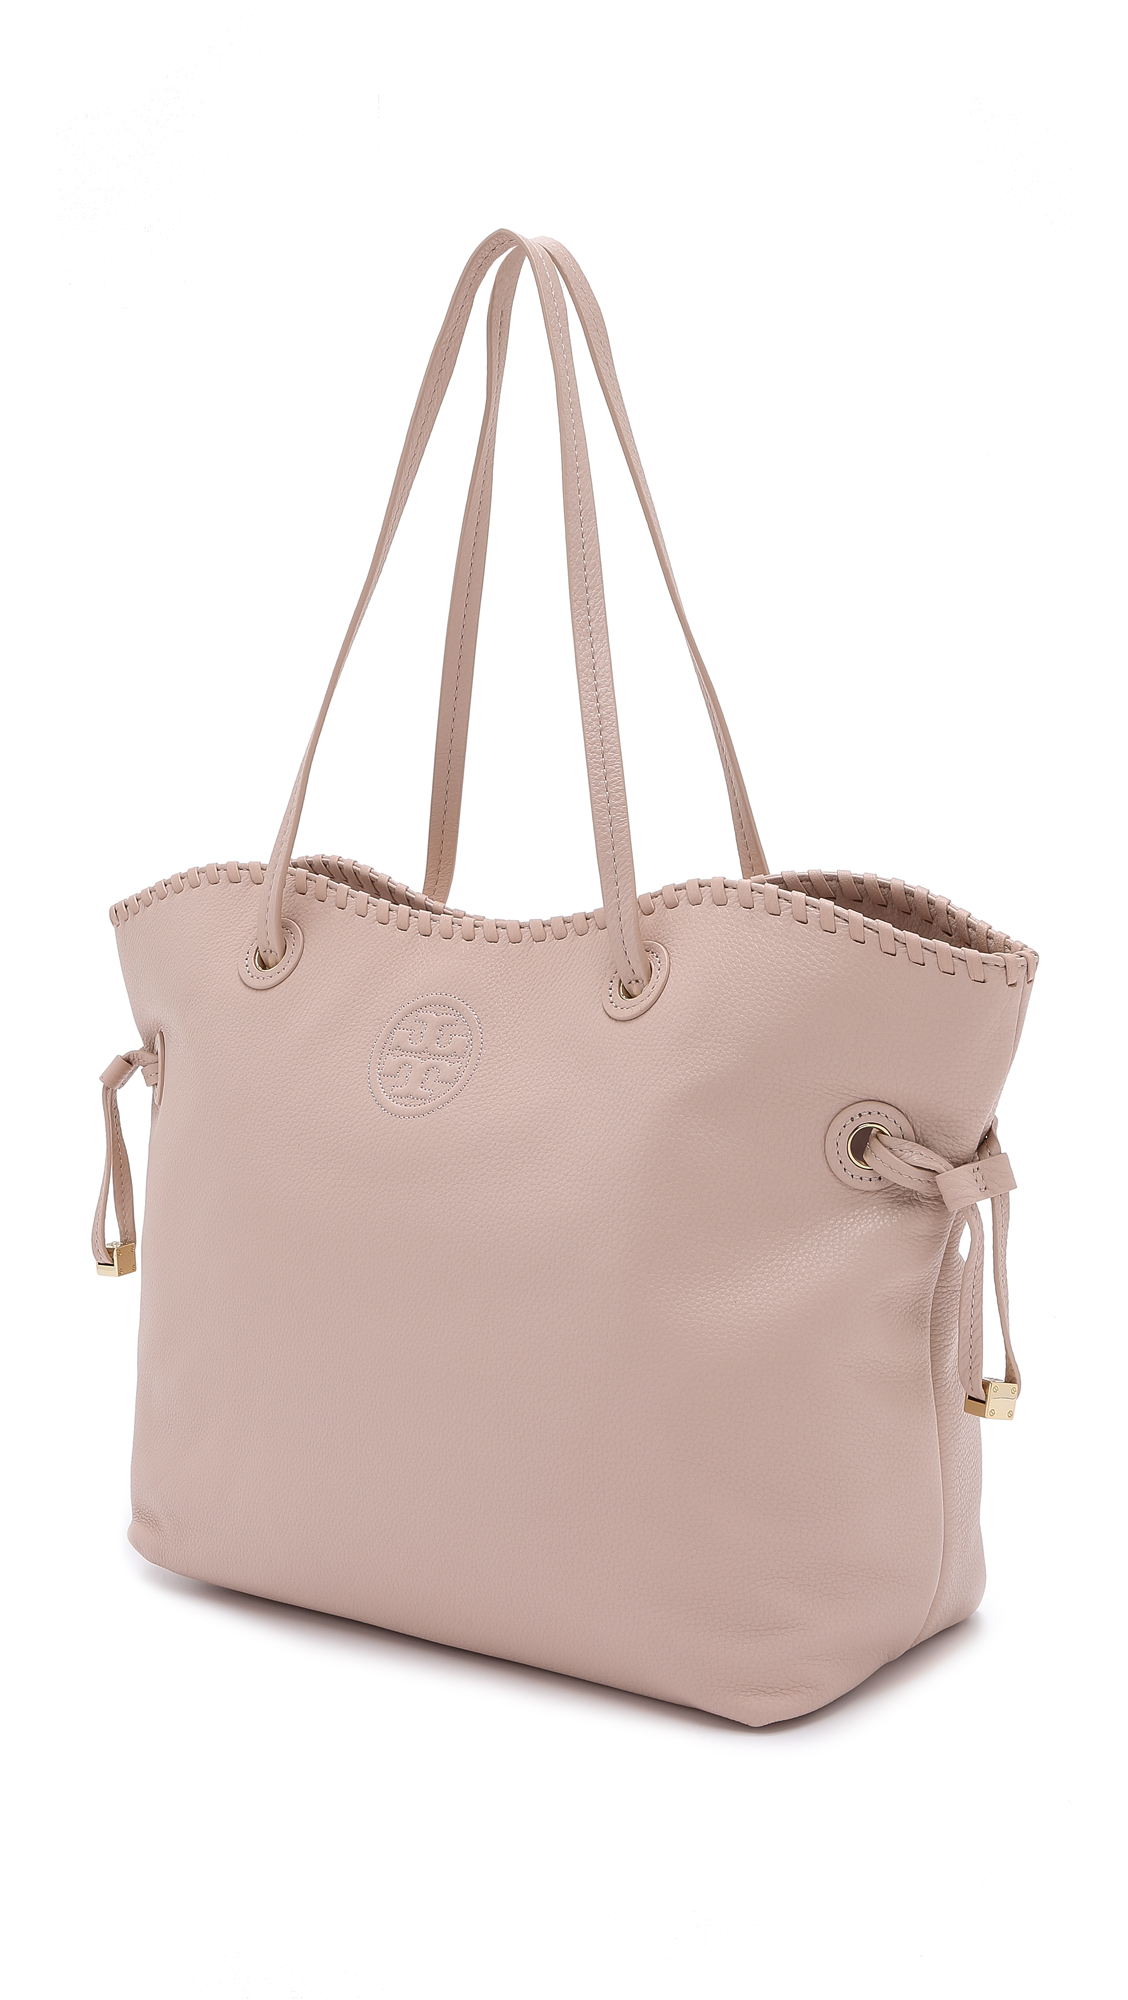 90dbfcd26efb Gallery. Previously sold at  Shopbop · Women s Tory Burch Marion ...